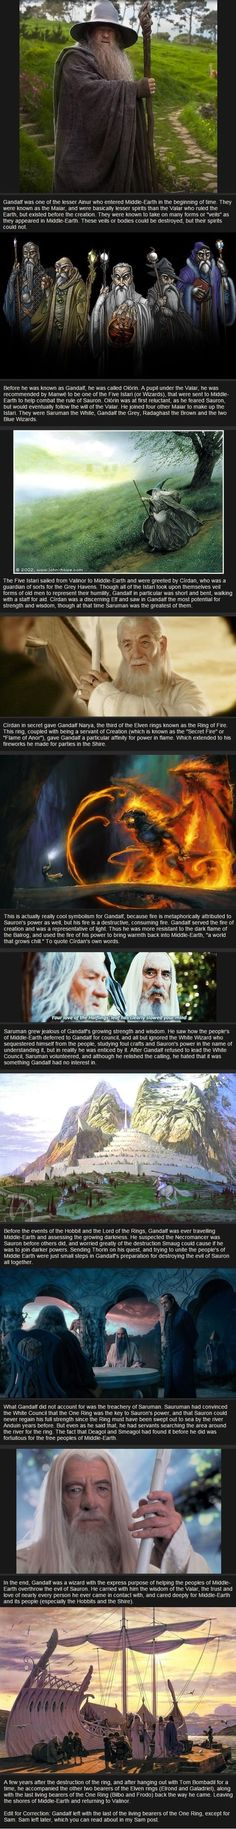 The Life and Times of Gandalf the Grey